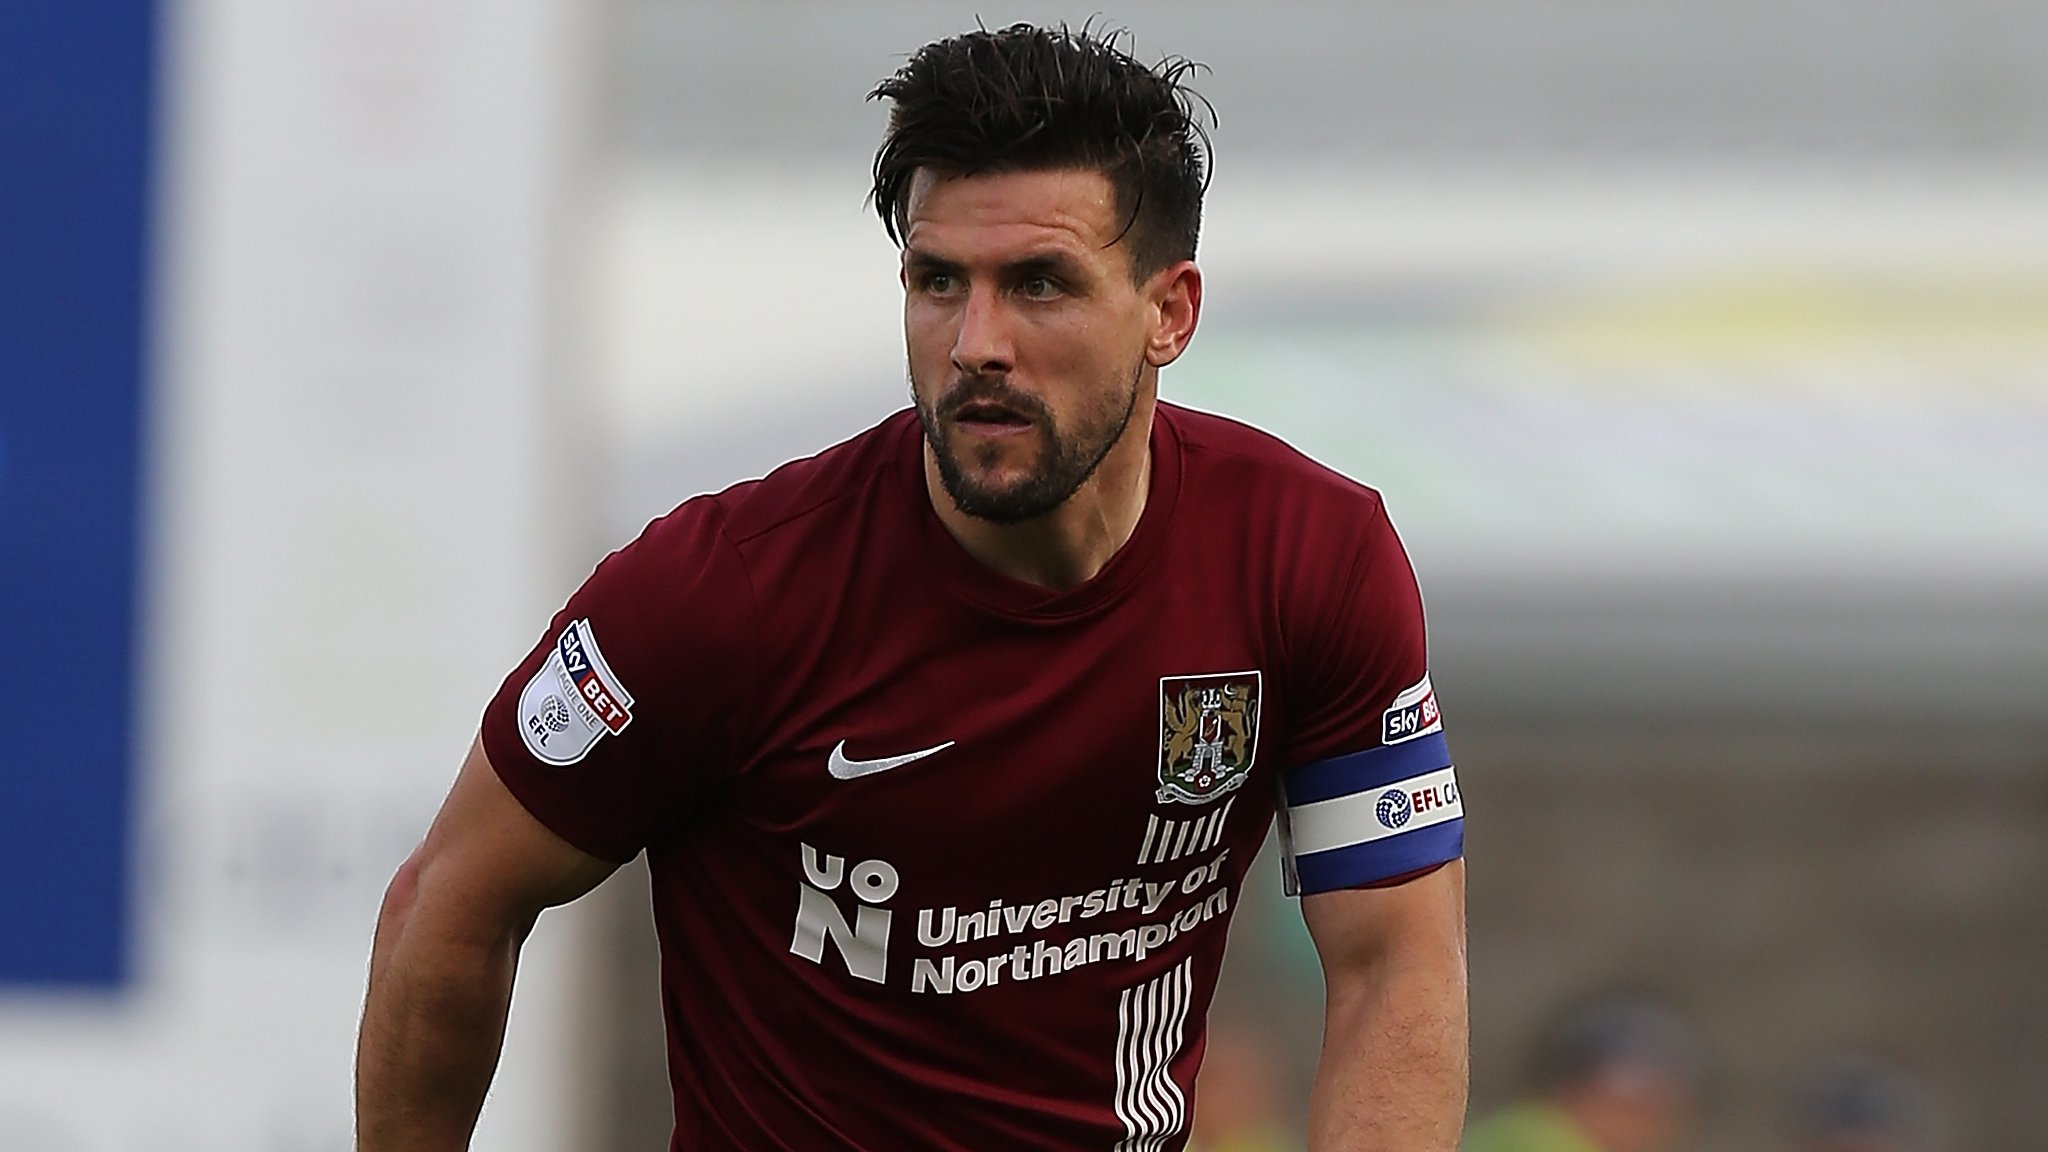 Fans wanted to fight me after match, says Northampton captain Buchanan